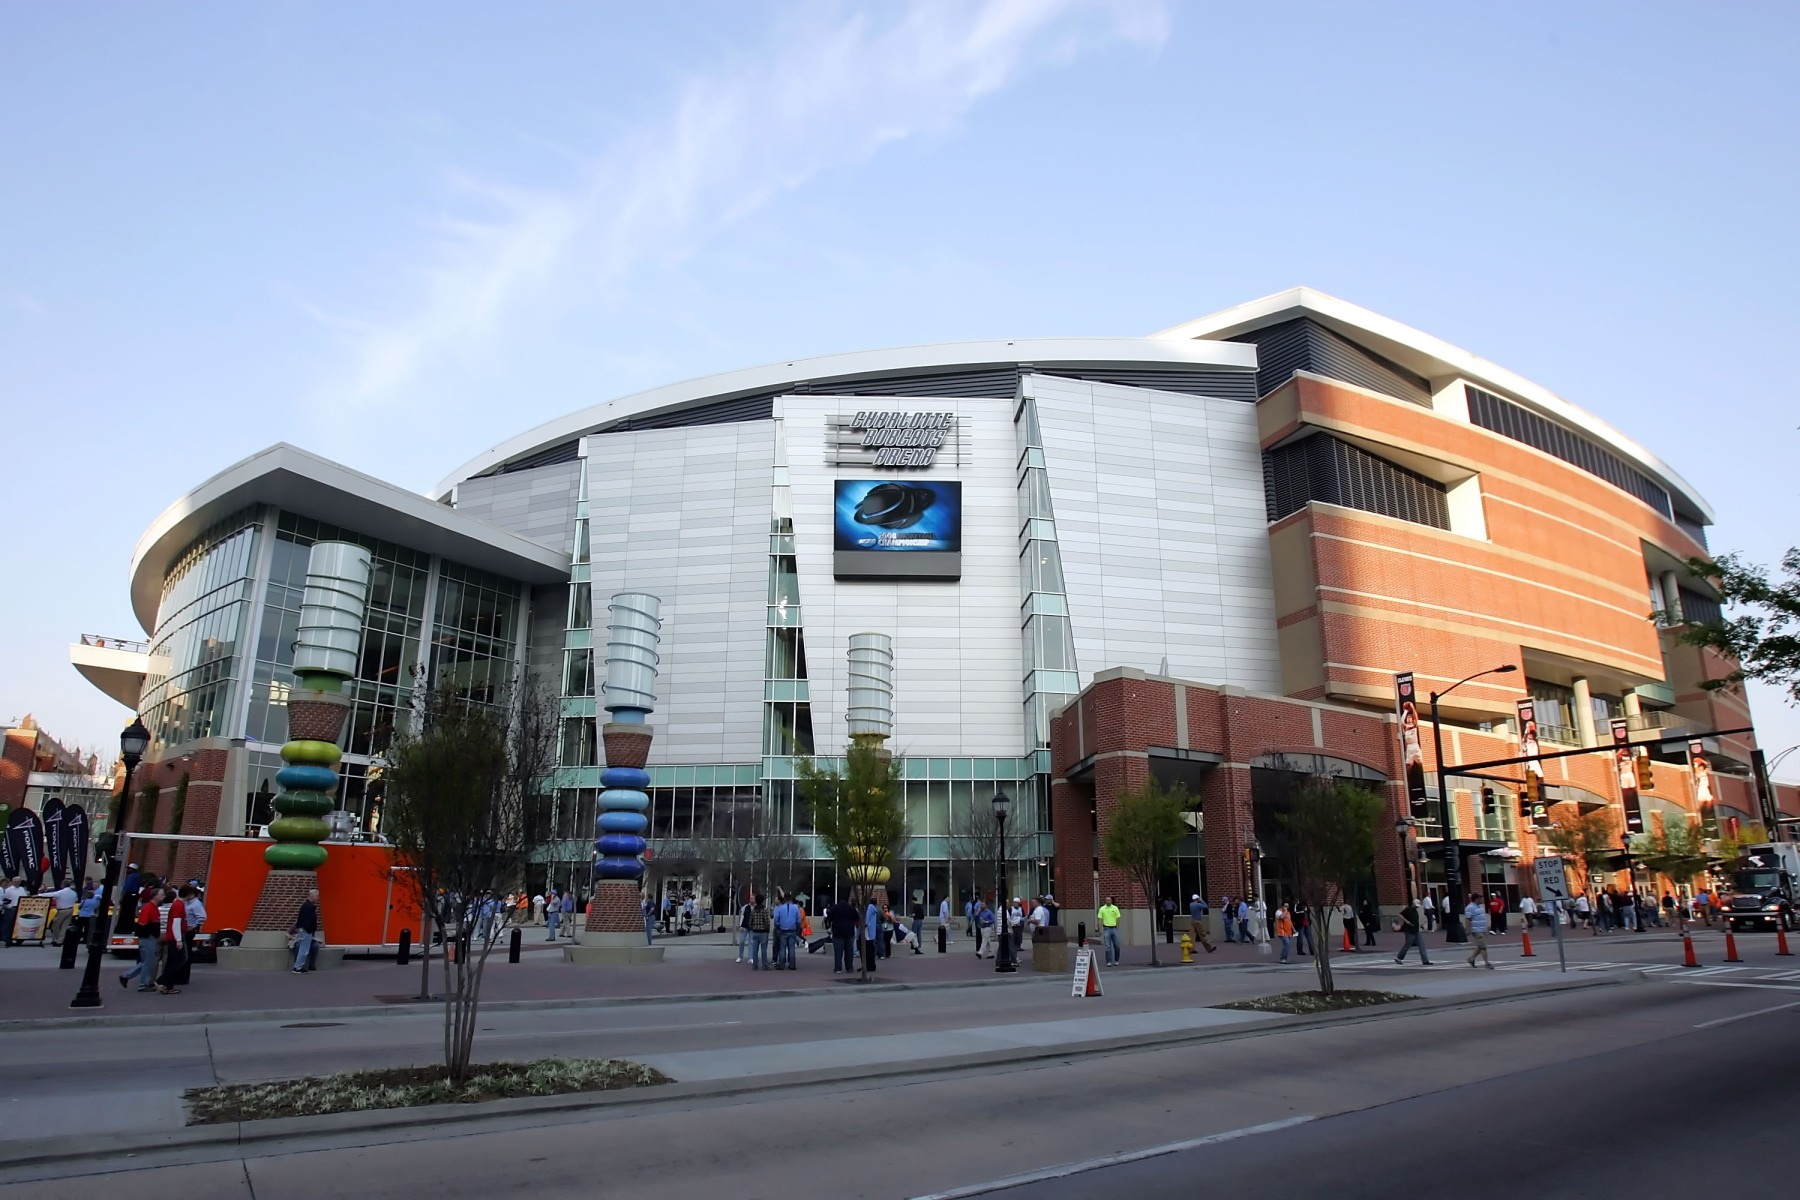 CHARLOTTE, NC - MARCH 27:  A general view of the outside of Bobcats Arena before the start of the 2008 NCAA Men's East Regional Semifinal games on March 27, 2008 in Charlotte, North Carolina.  (Photo by Streeter Lecka/Getty Images)